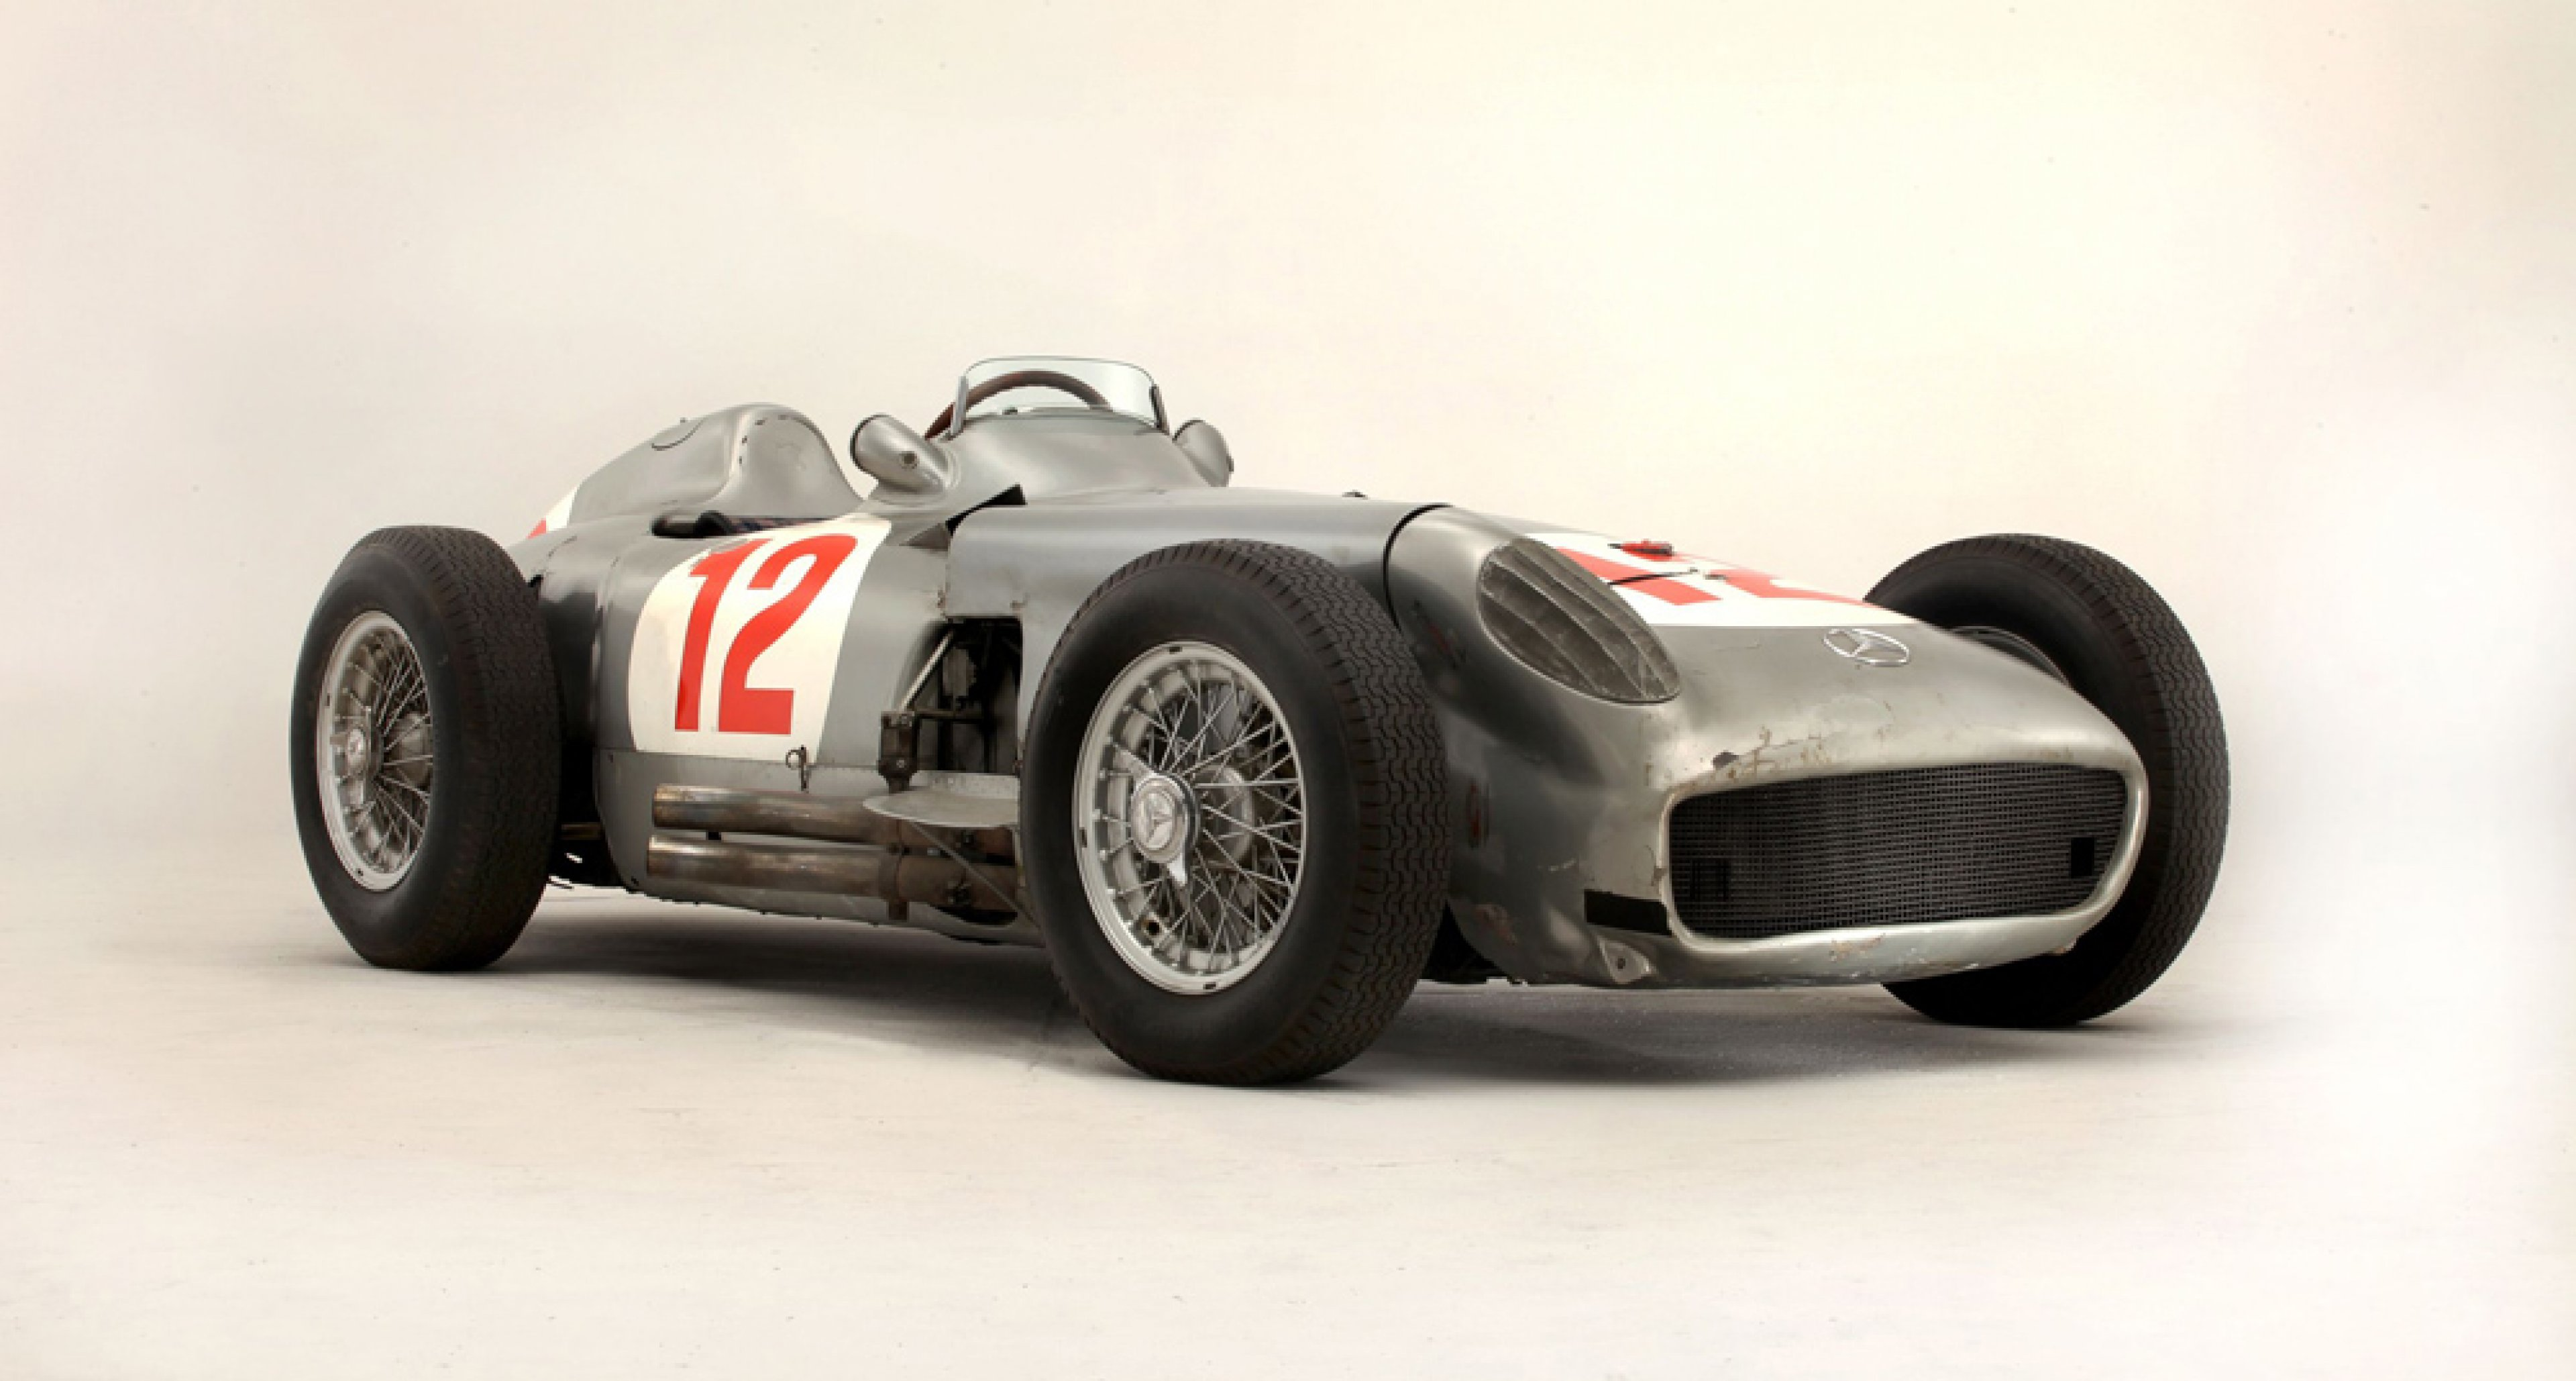 1954 Mercedes-Benz W196, sold in July 2013 for $ 29,967,886.